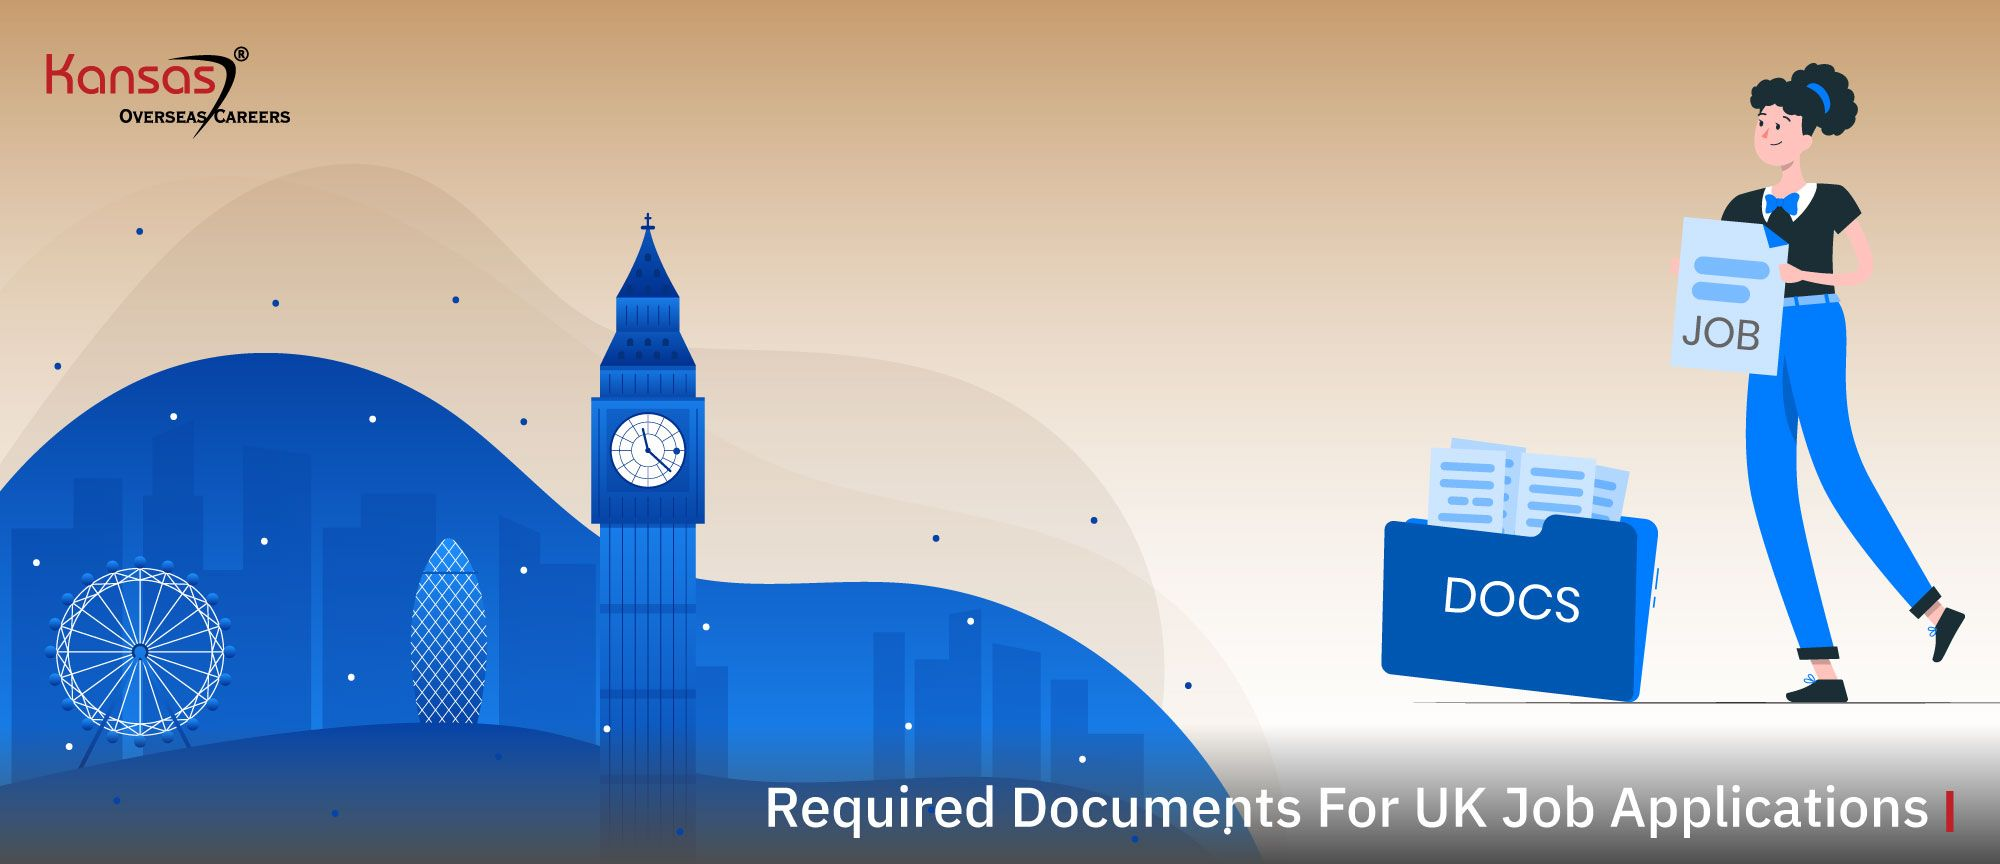 Required-Documents-For-UK-Job-Applications